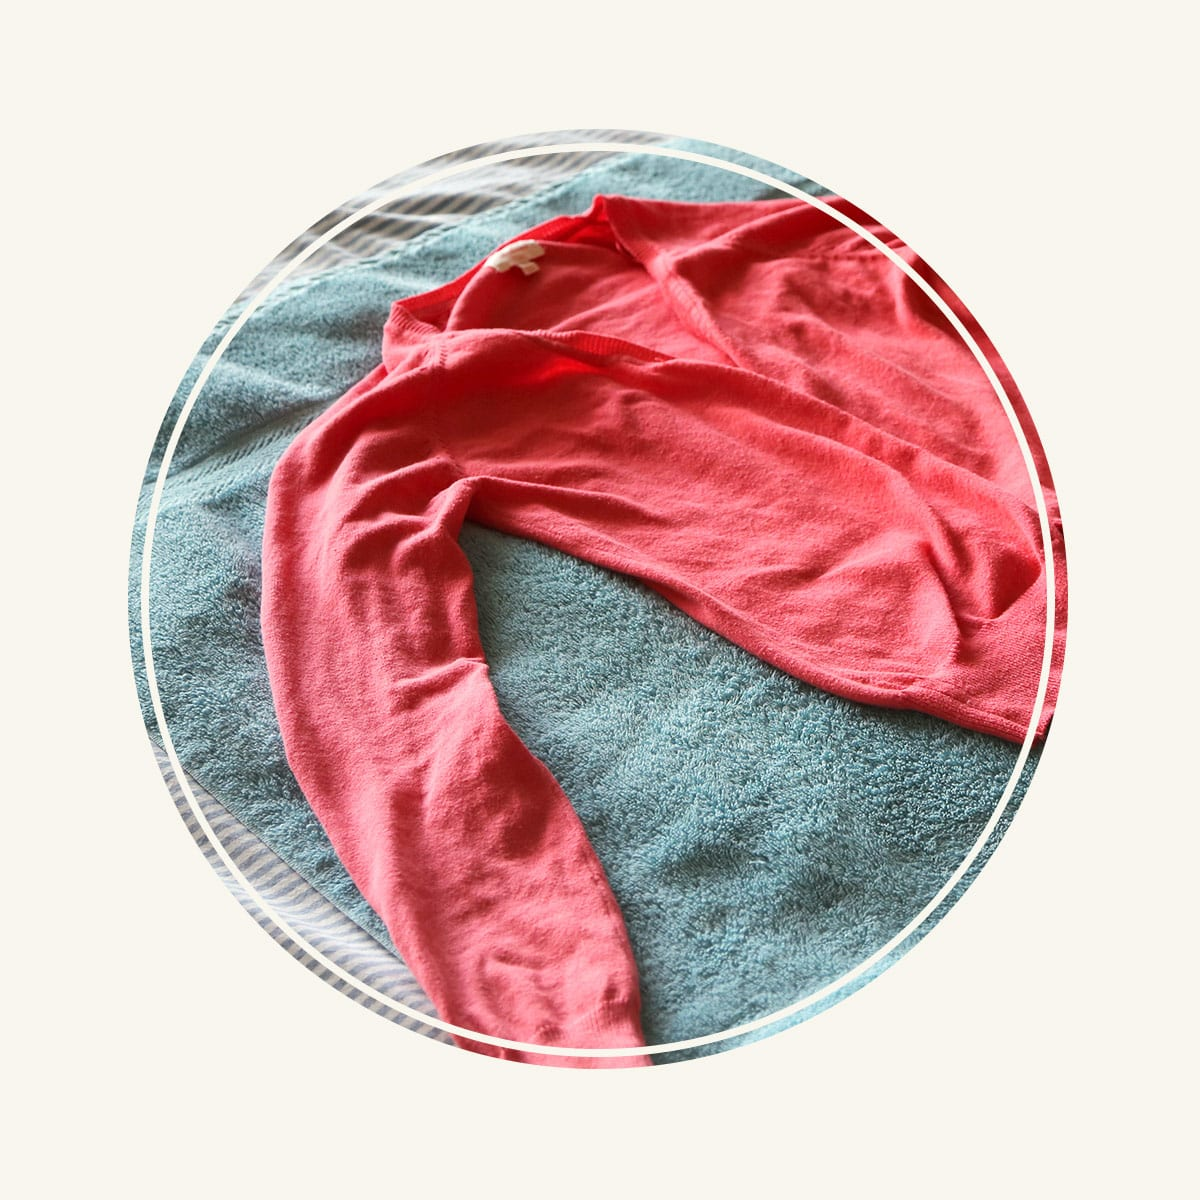 Women's pink cashmere sweater laying on a turquoise towel after washing.